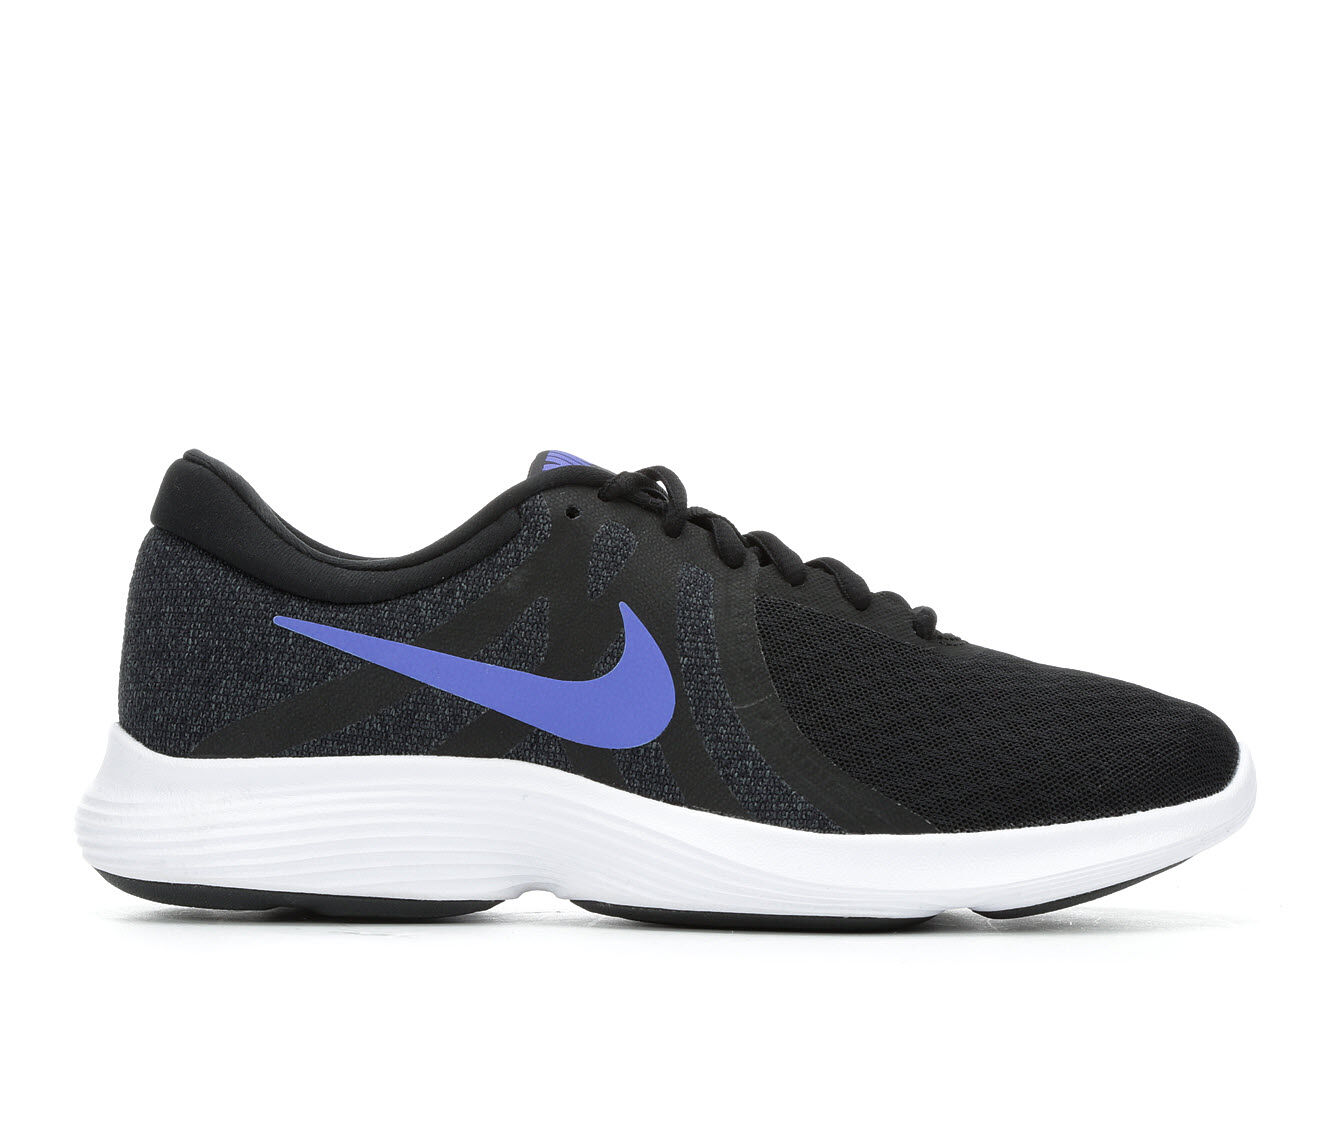 Women's Nike Revolution 4 Running Shoes Black/Blue/Wht